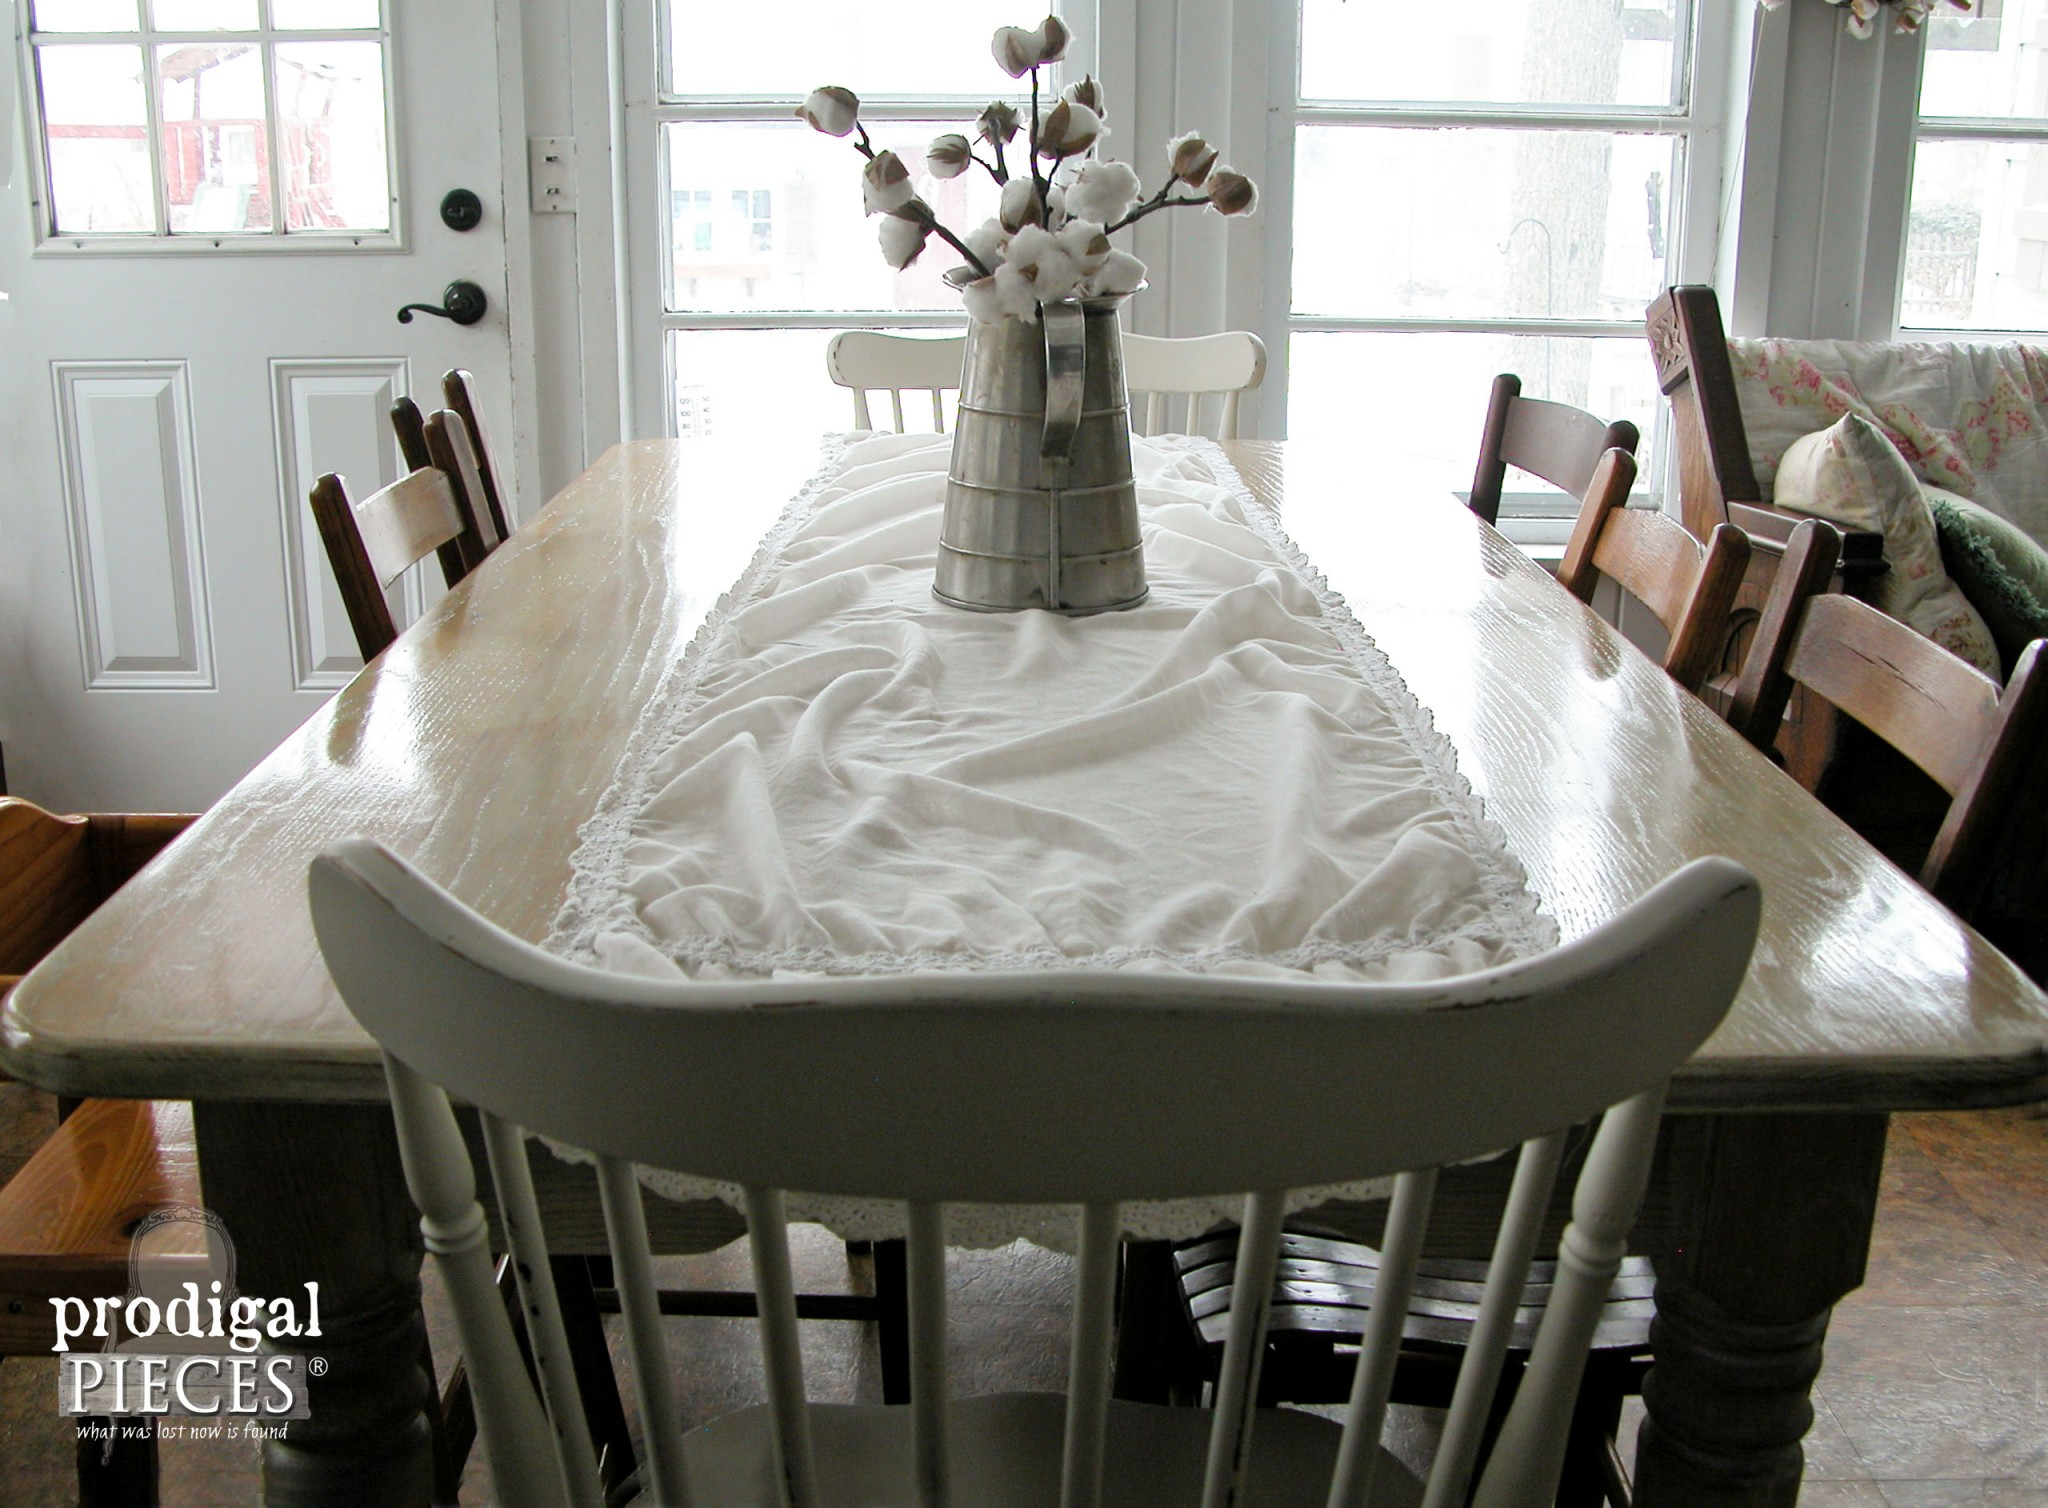 whitewashed limewashed wood whitewash kitchen table Farmhouse Table with Whitewash by Prodigal Pieces www prodigalpieces com